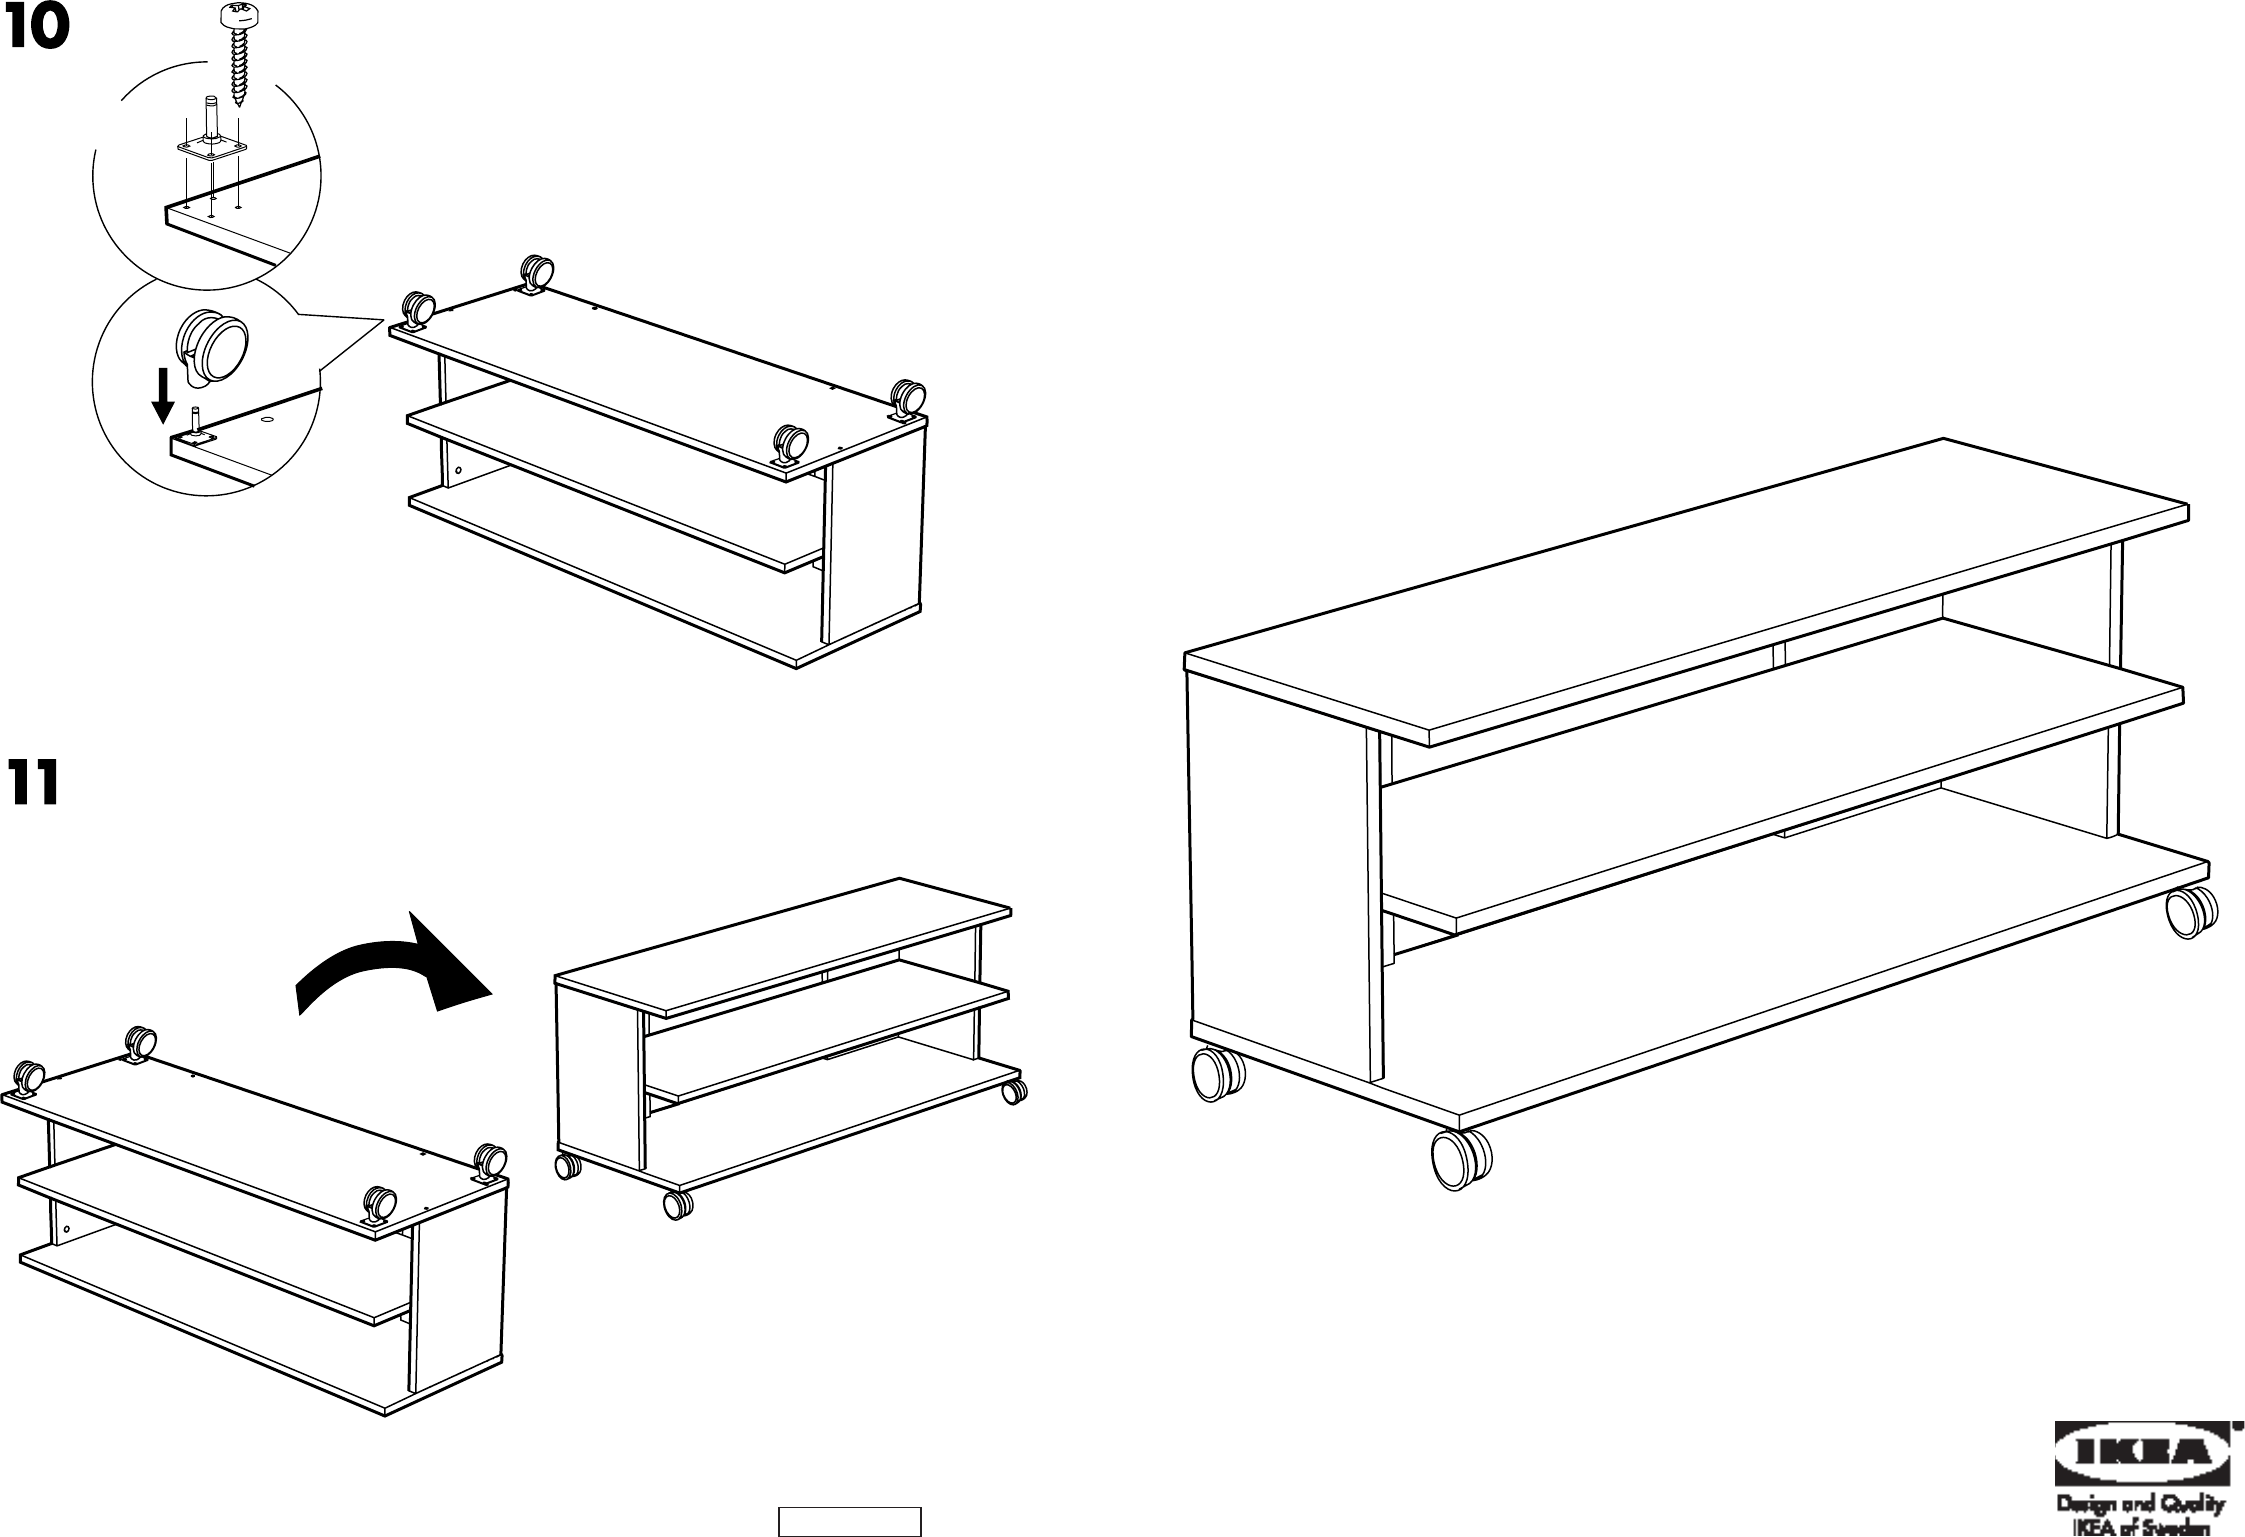 IKEA TV Video Accessories AA-189267-3 User Guide